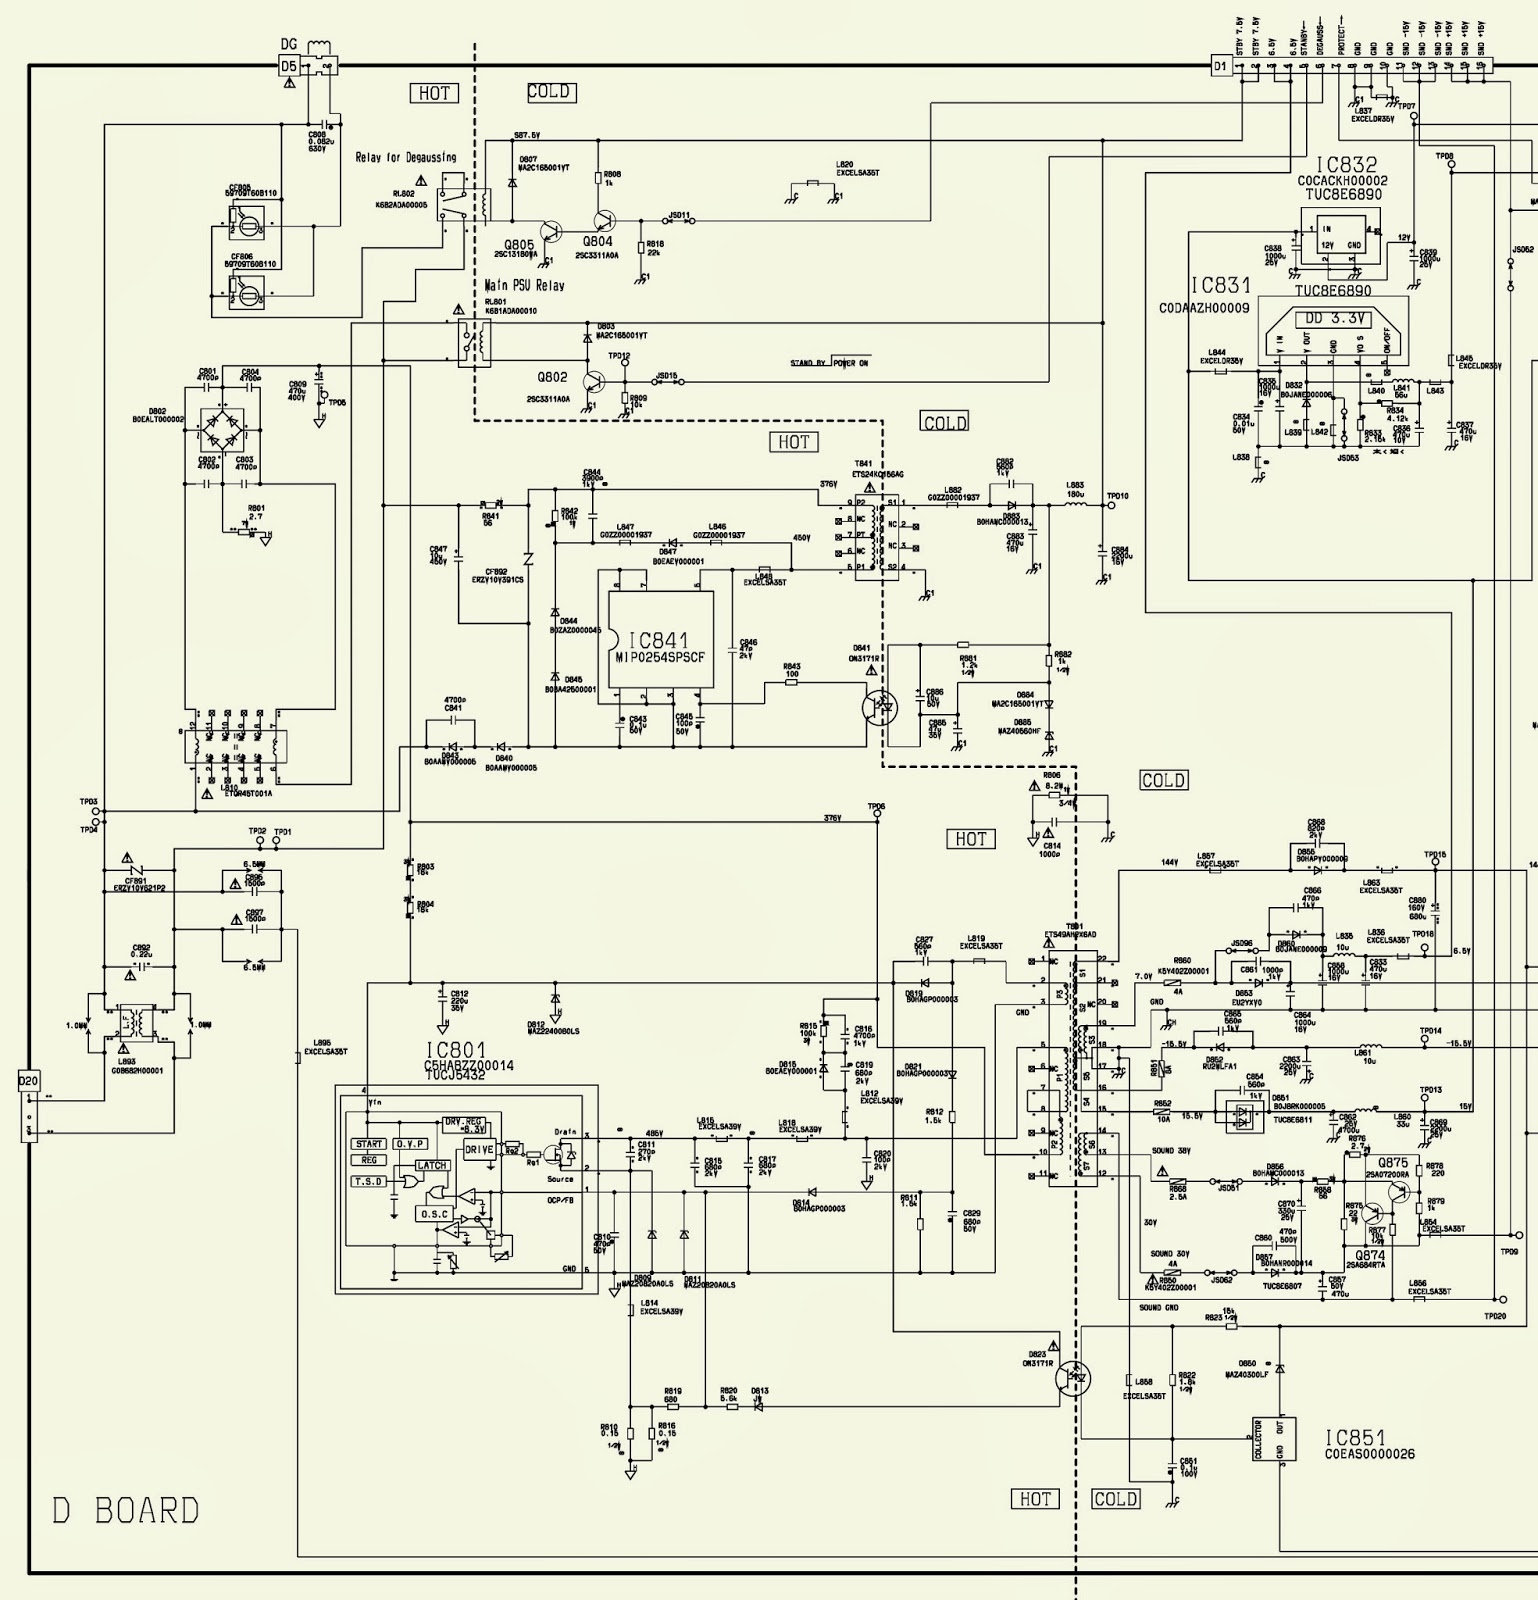 Panasonic panasonic tx 32pd30 tx 36pd30 power supply smps panasonic panasonic tx 32pd30 tx 36pd30 power supply smps schematic circuit diagram asfbconference2016 Images